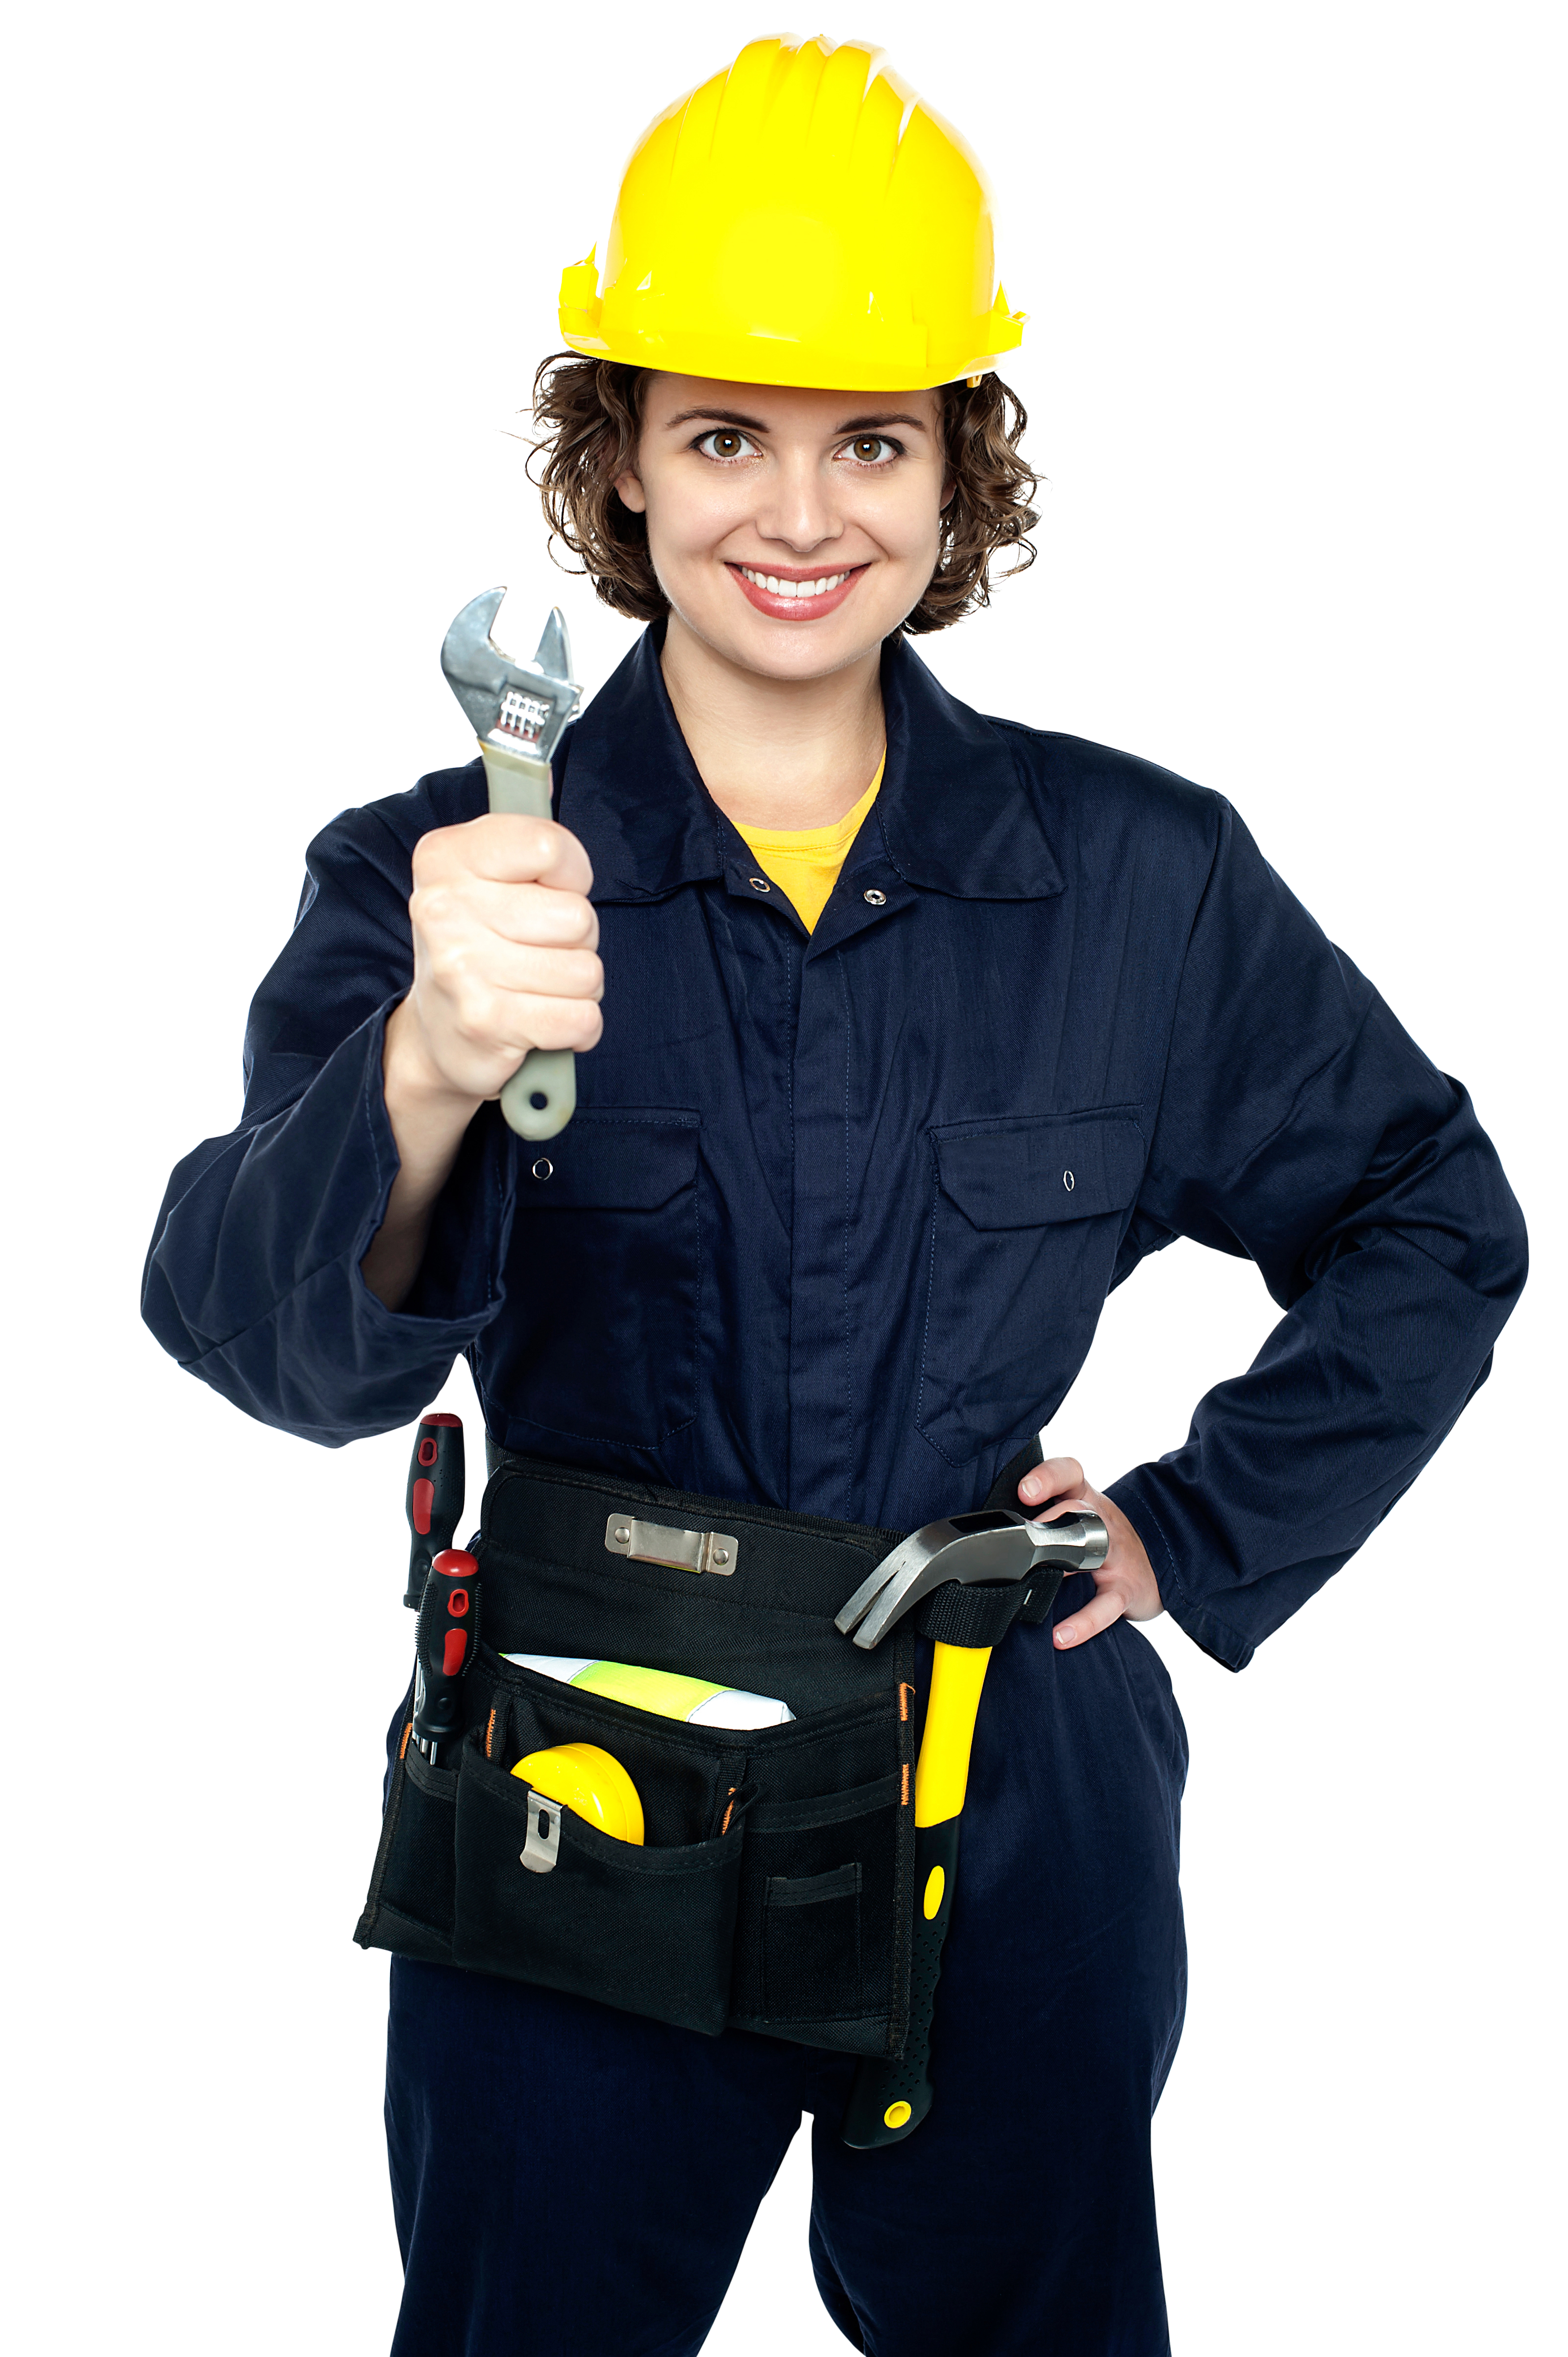 Women Worker PNG Image.